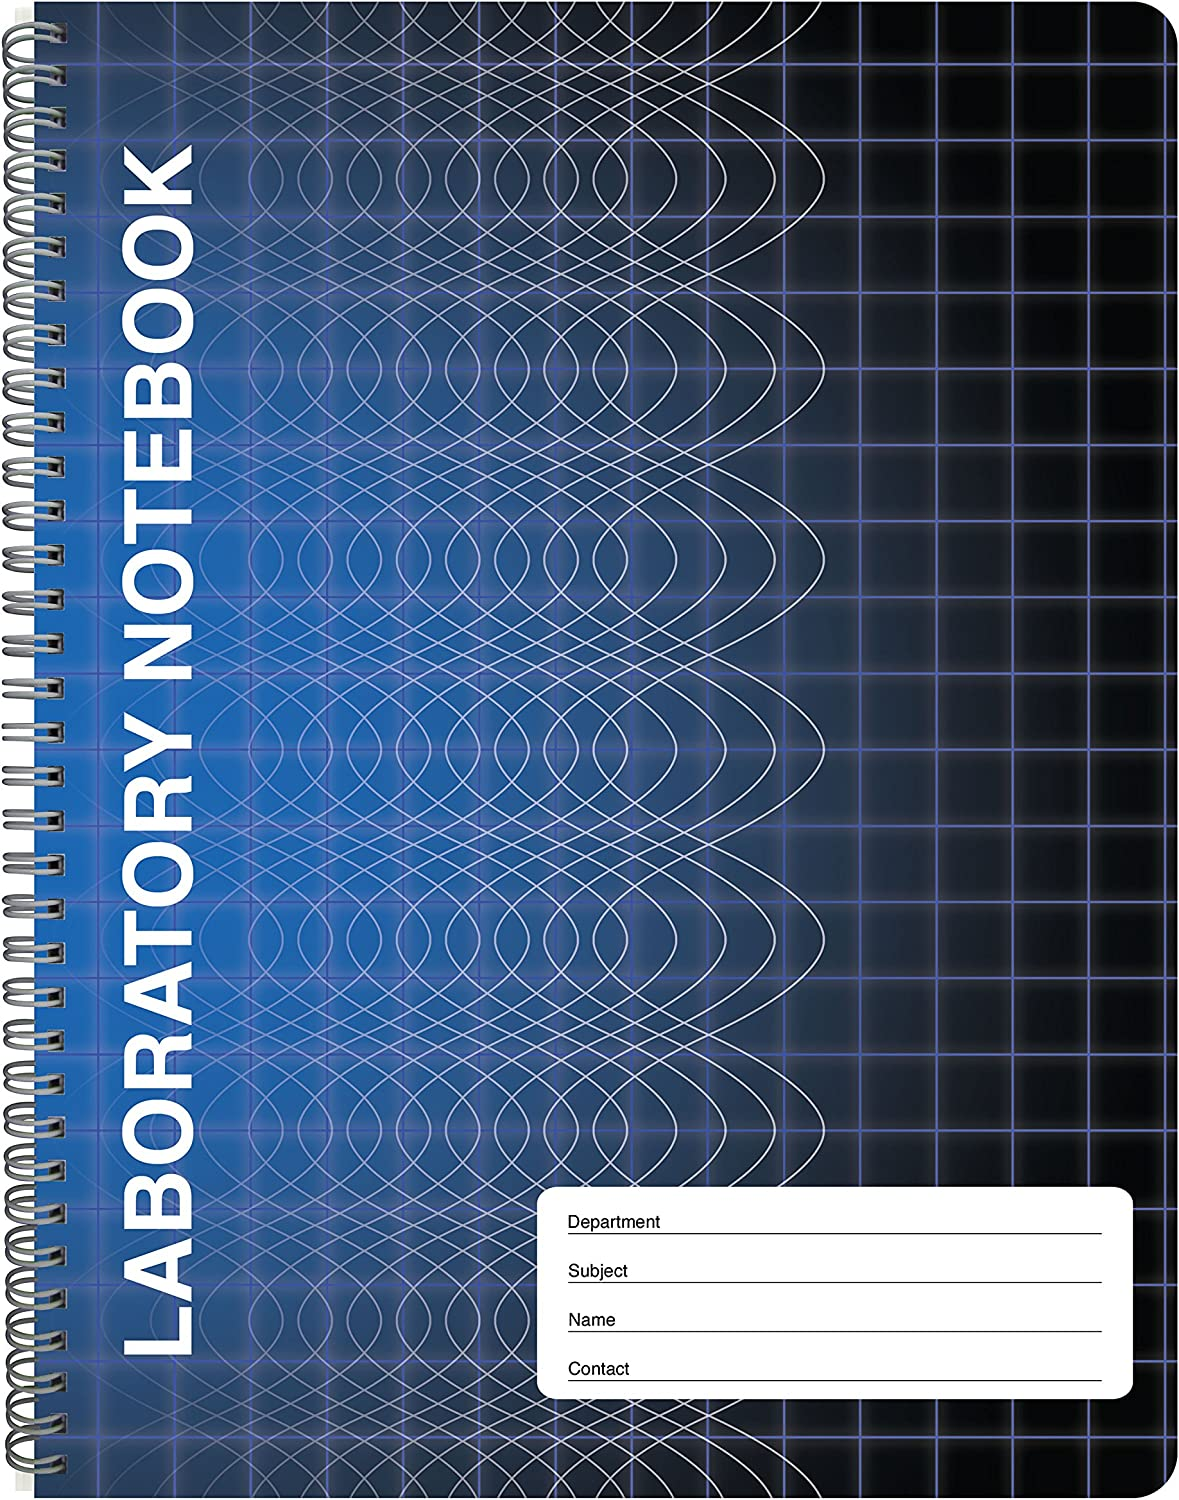 """BookFactory Computation Lab Notebook - 100 Pages (9 1/4"""" X 11 3/4"""") - Scientific Grid Pages, Durable Translucent Cover, Wire-O Binding (COMP-100-CWG-A-(Lab)) : Office Products"""